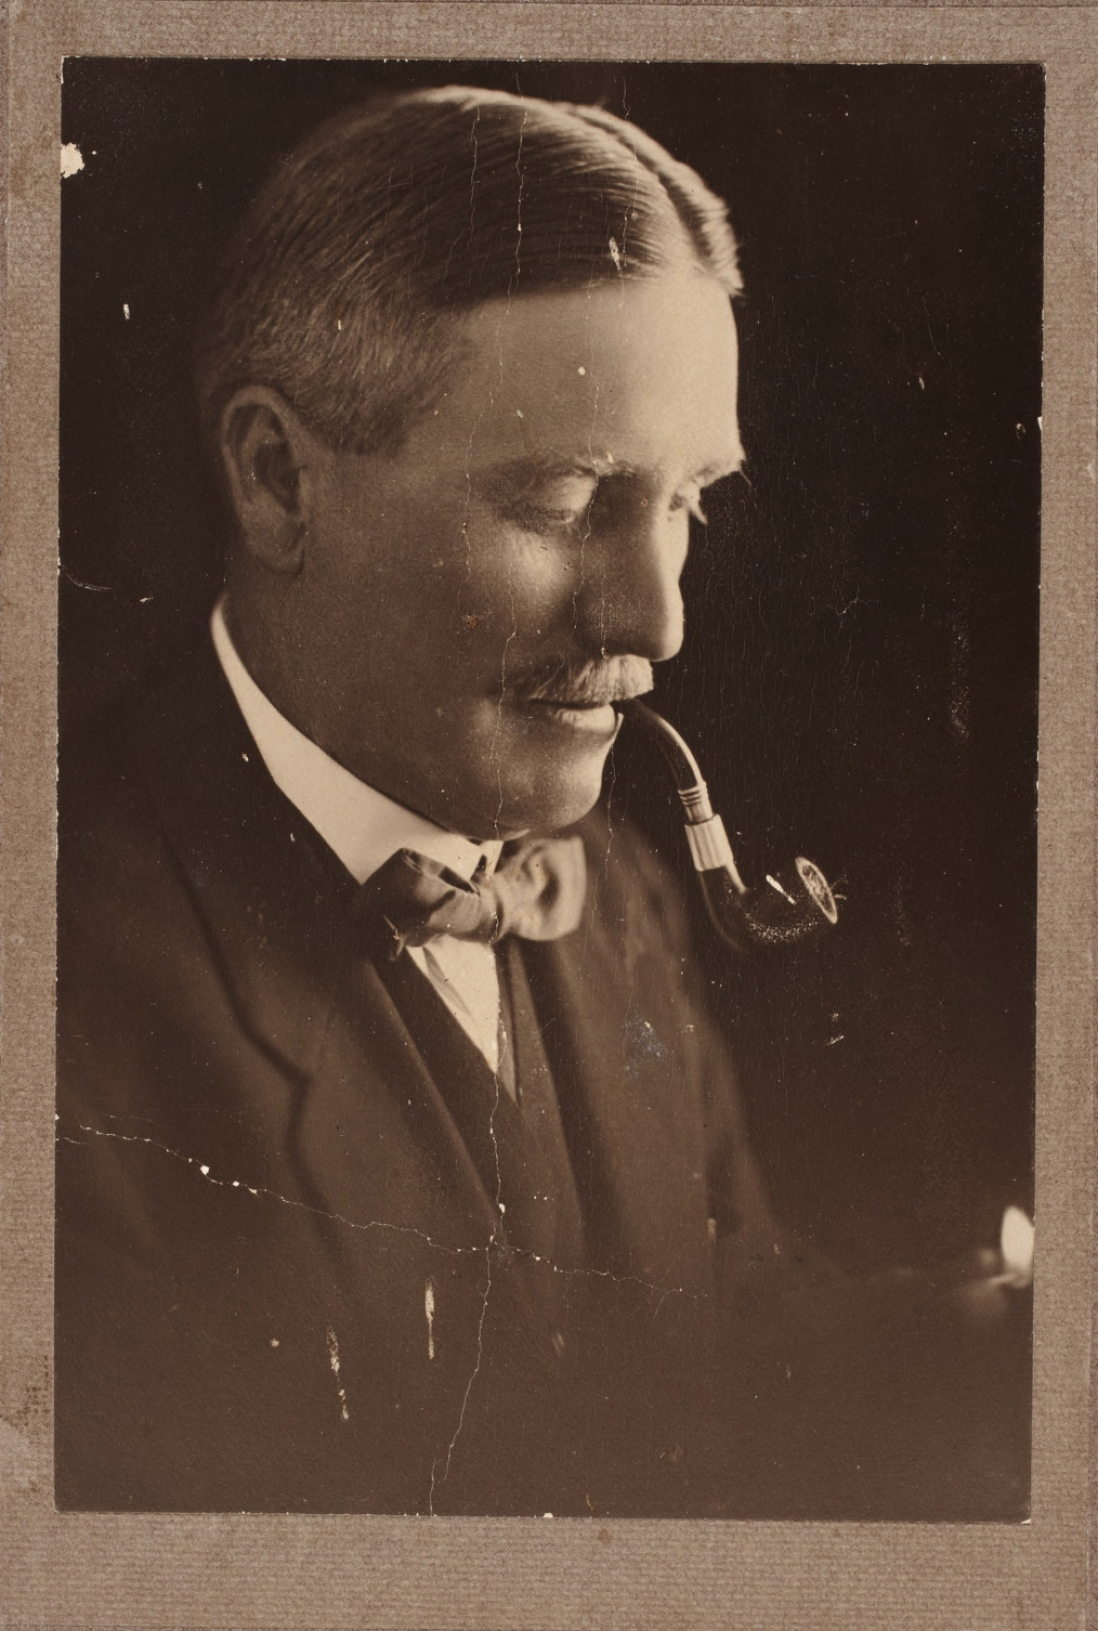 Portrait of man showing his right profile and smoking a pipe.